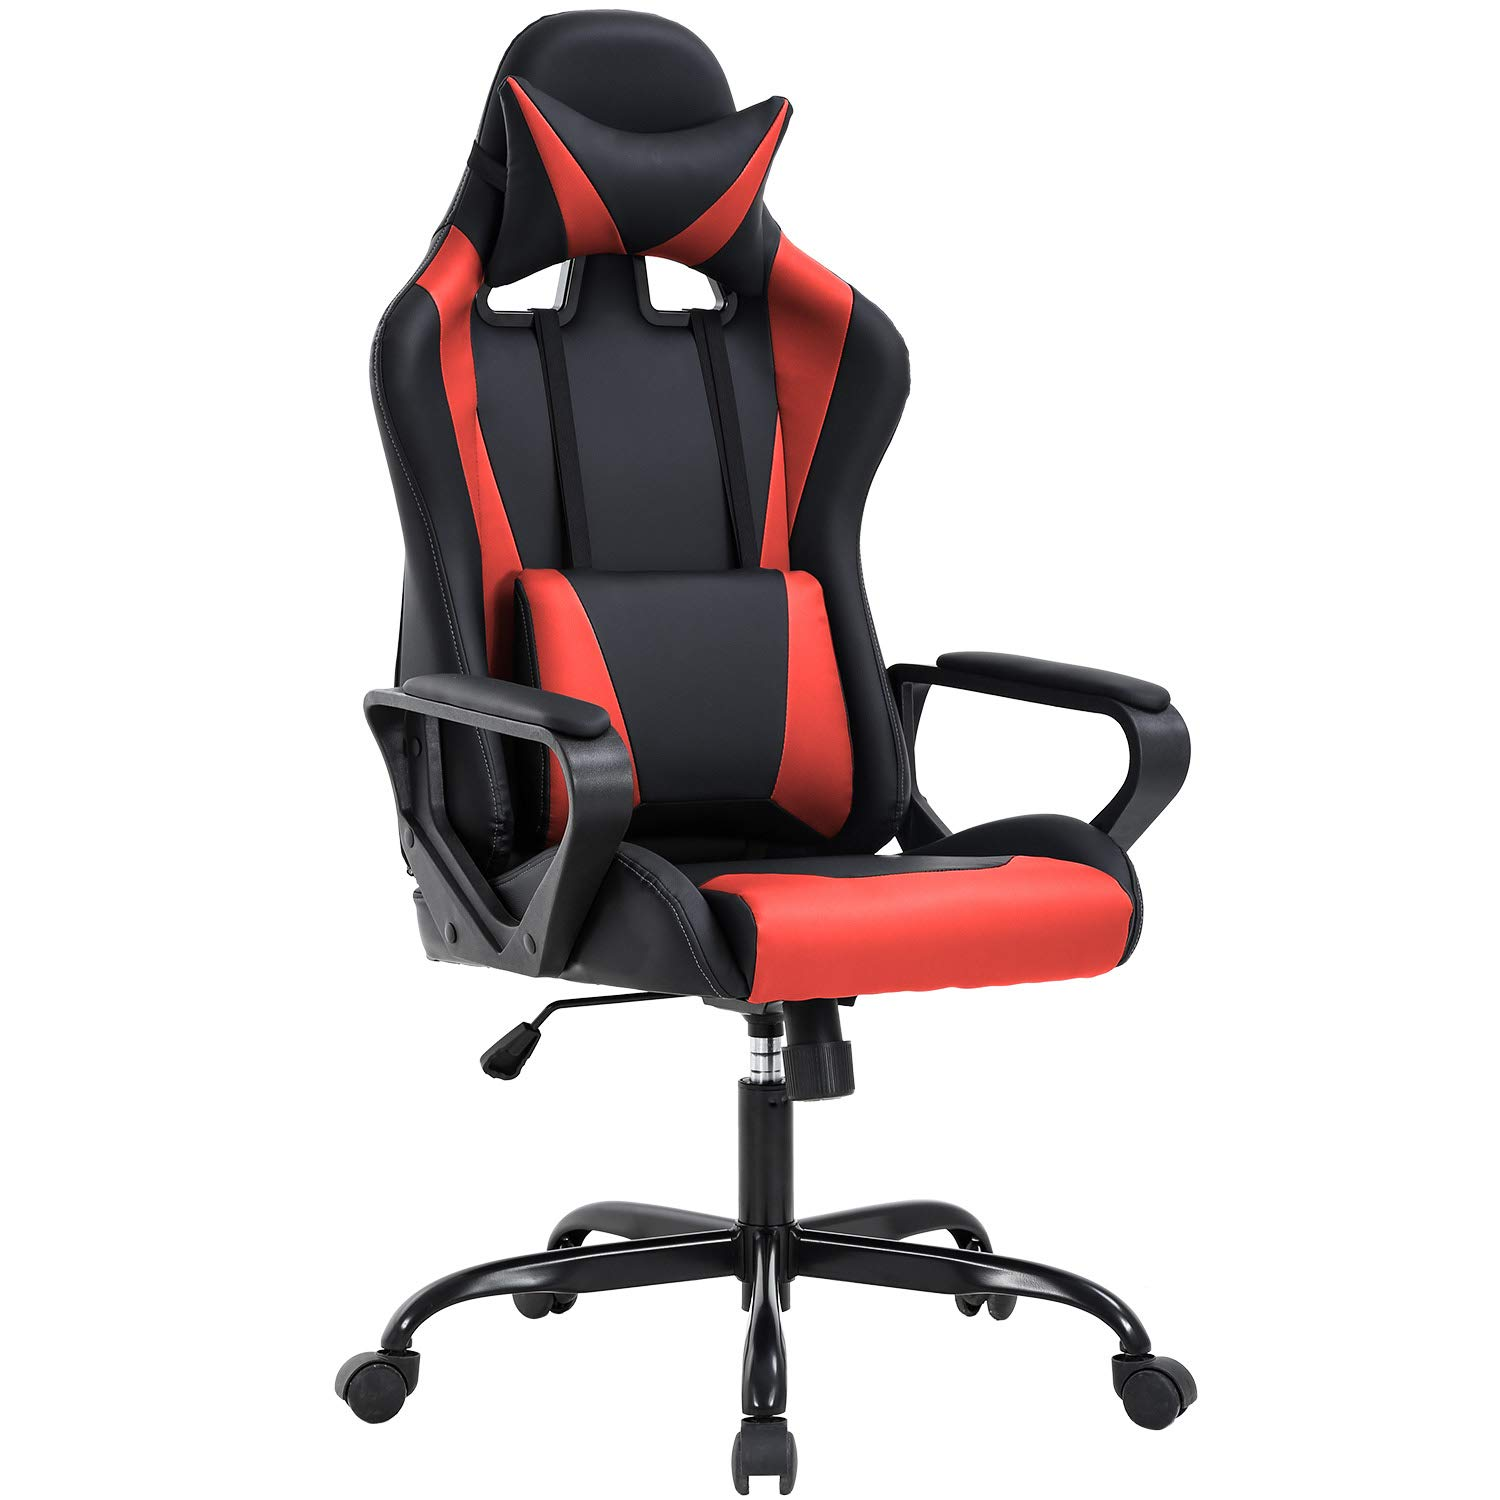 High-Back Gaming Office Chair Racing Style Computer Desk Chair Ergonomic Executive Swivel Rolling Chair with Lumbar Support for Women, Men(Red) by BestOffice